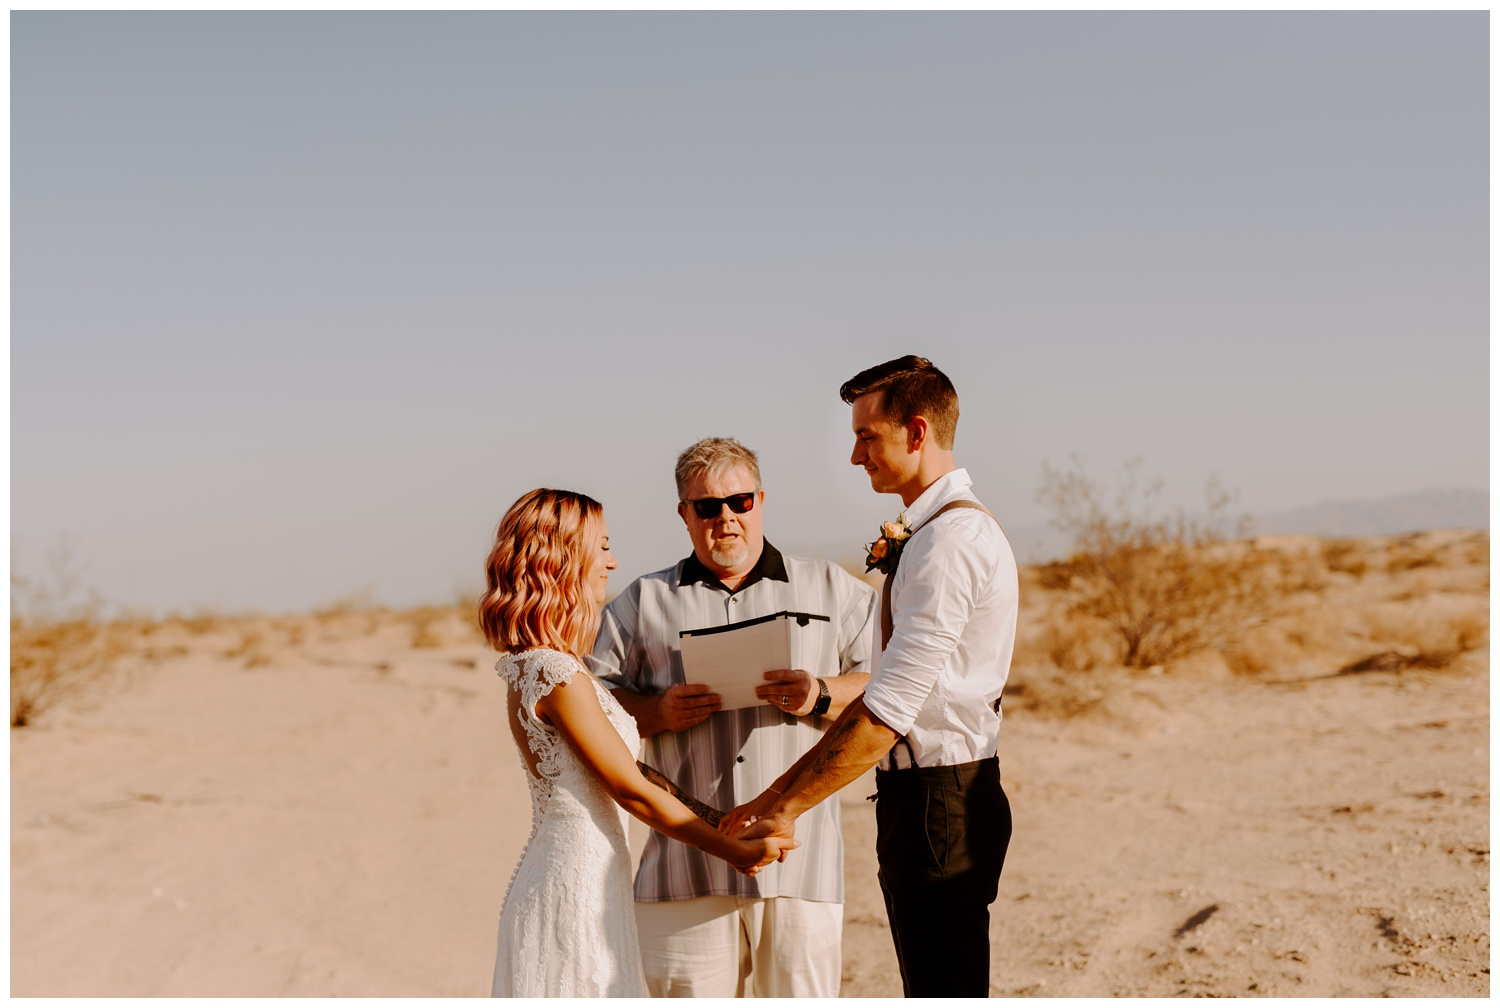 Salvation Mountain Elopement Palm Springs Pink Hair Bride - Jessica Heron Images_0129.jpg